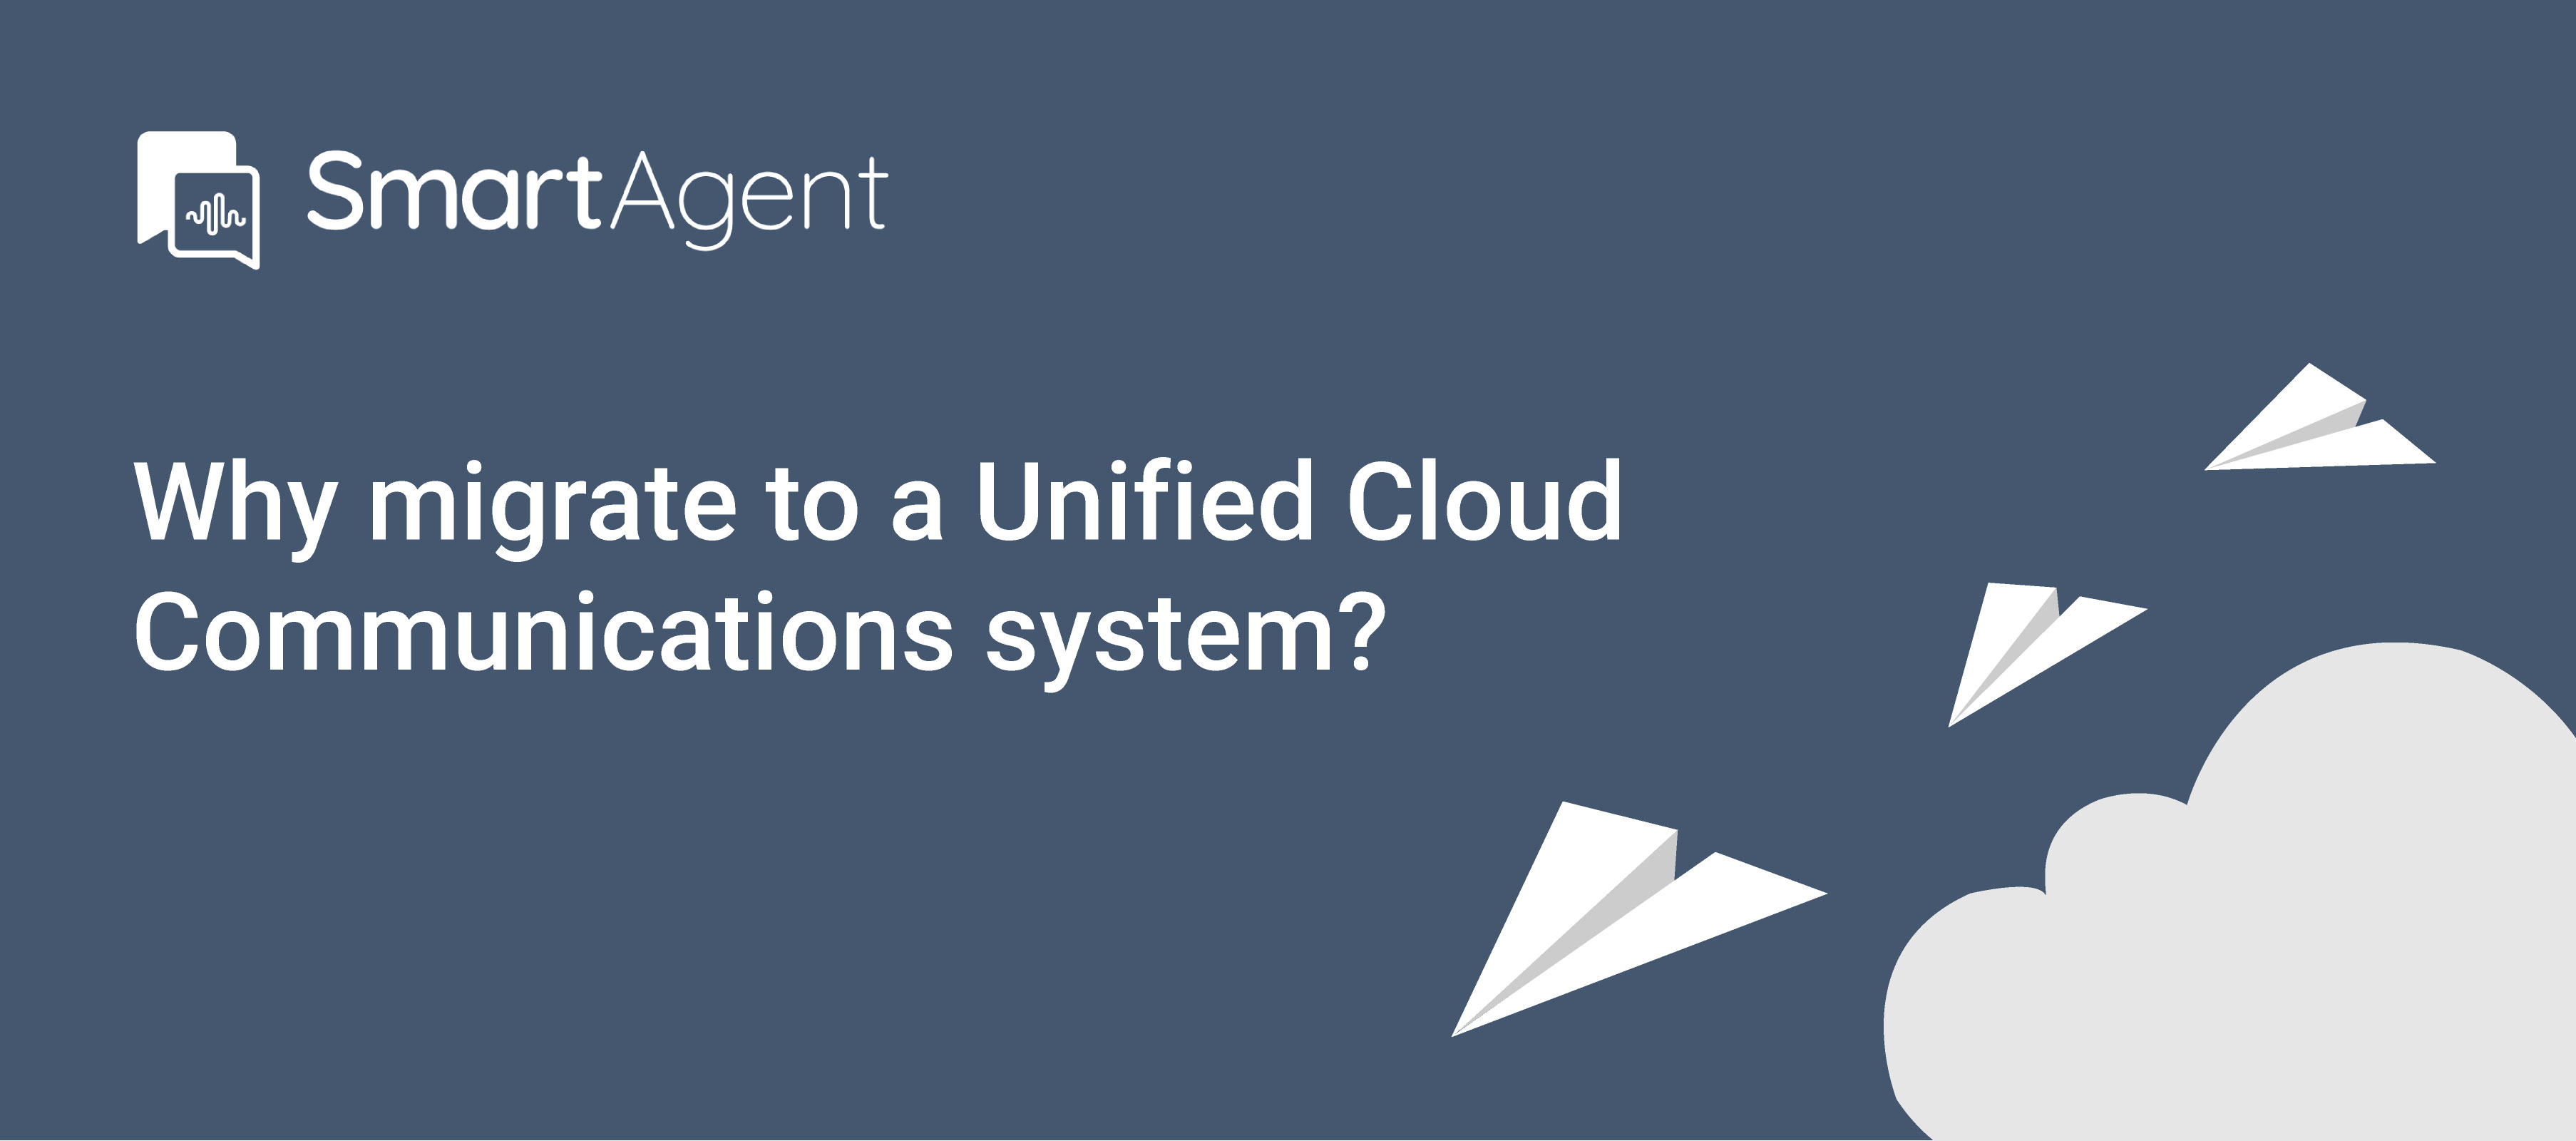 Why migrate to a Unified Cloud Communications system?